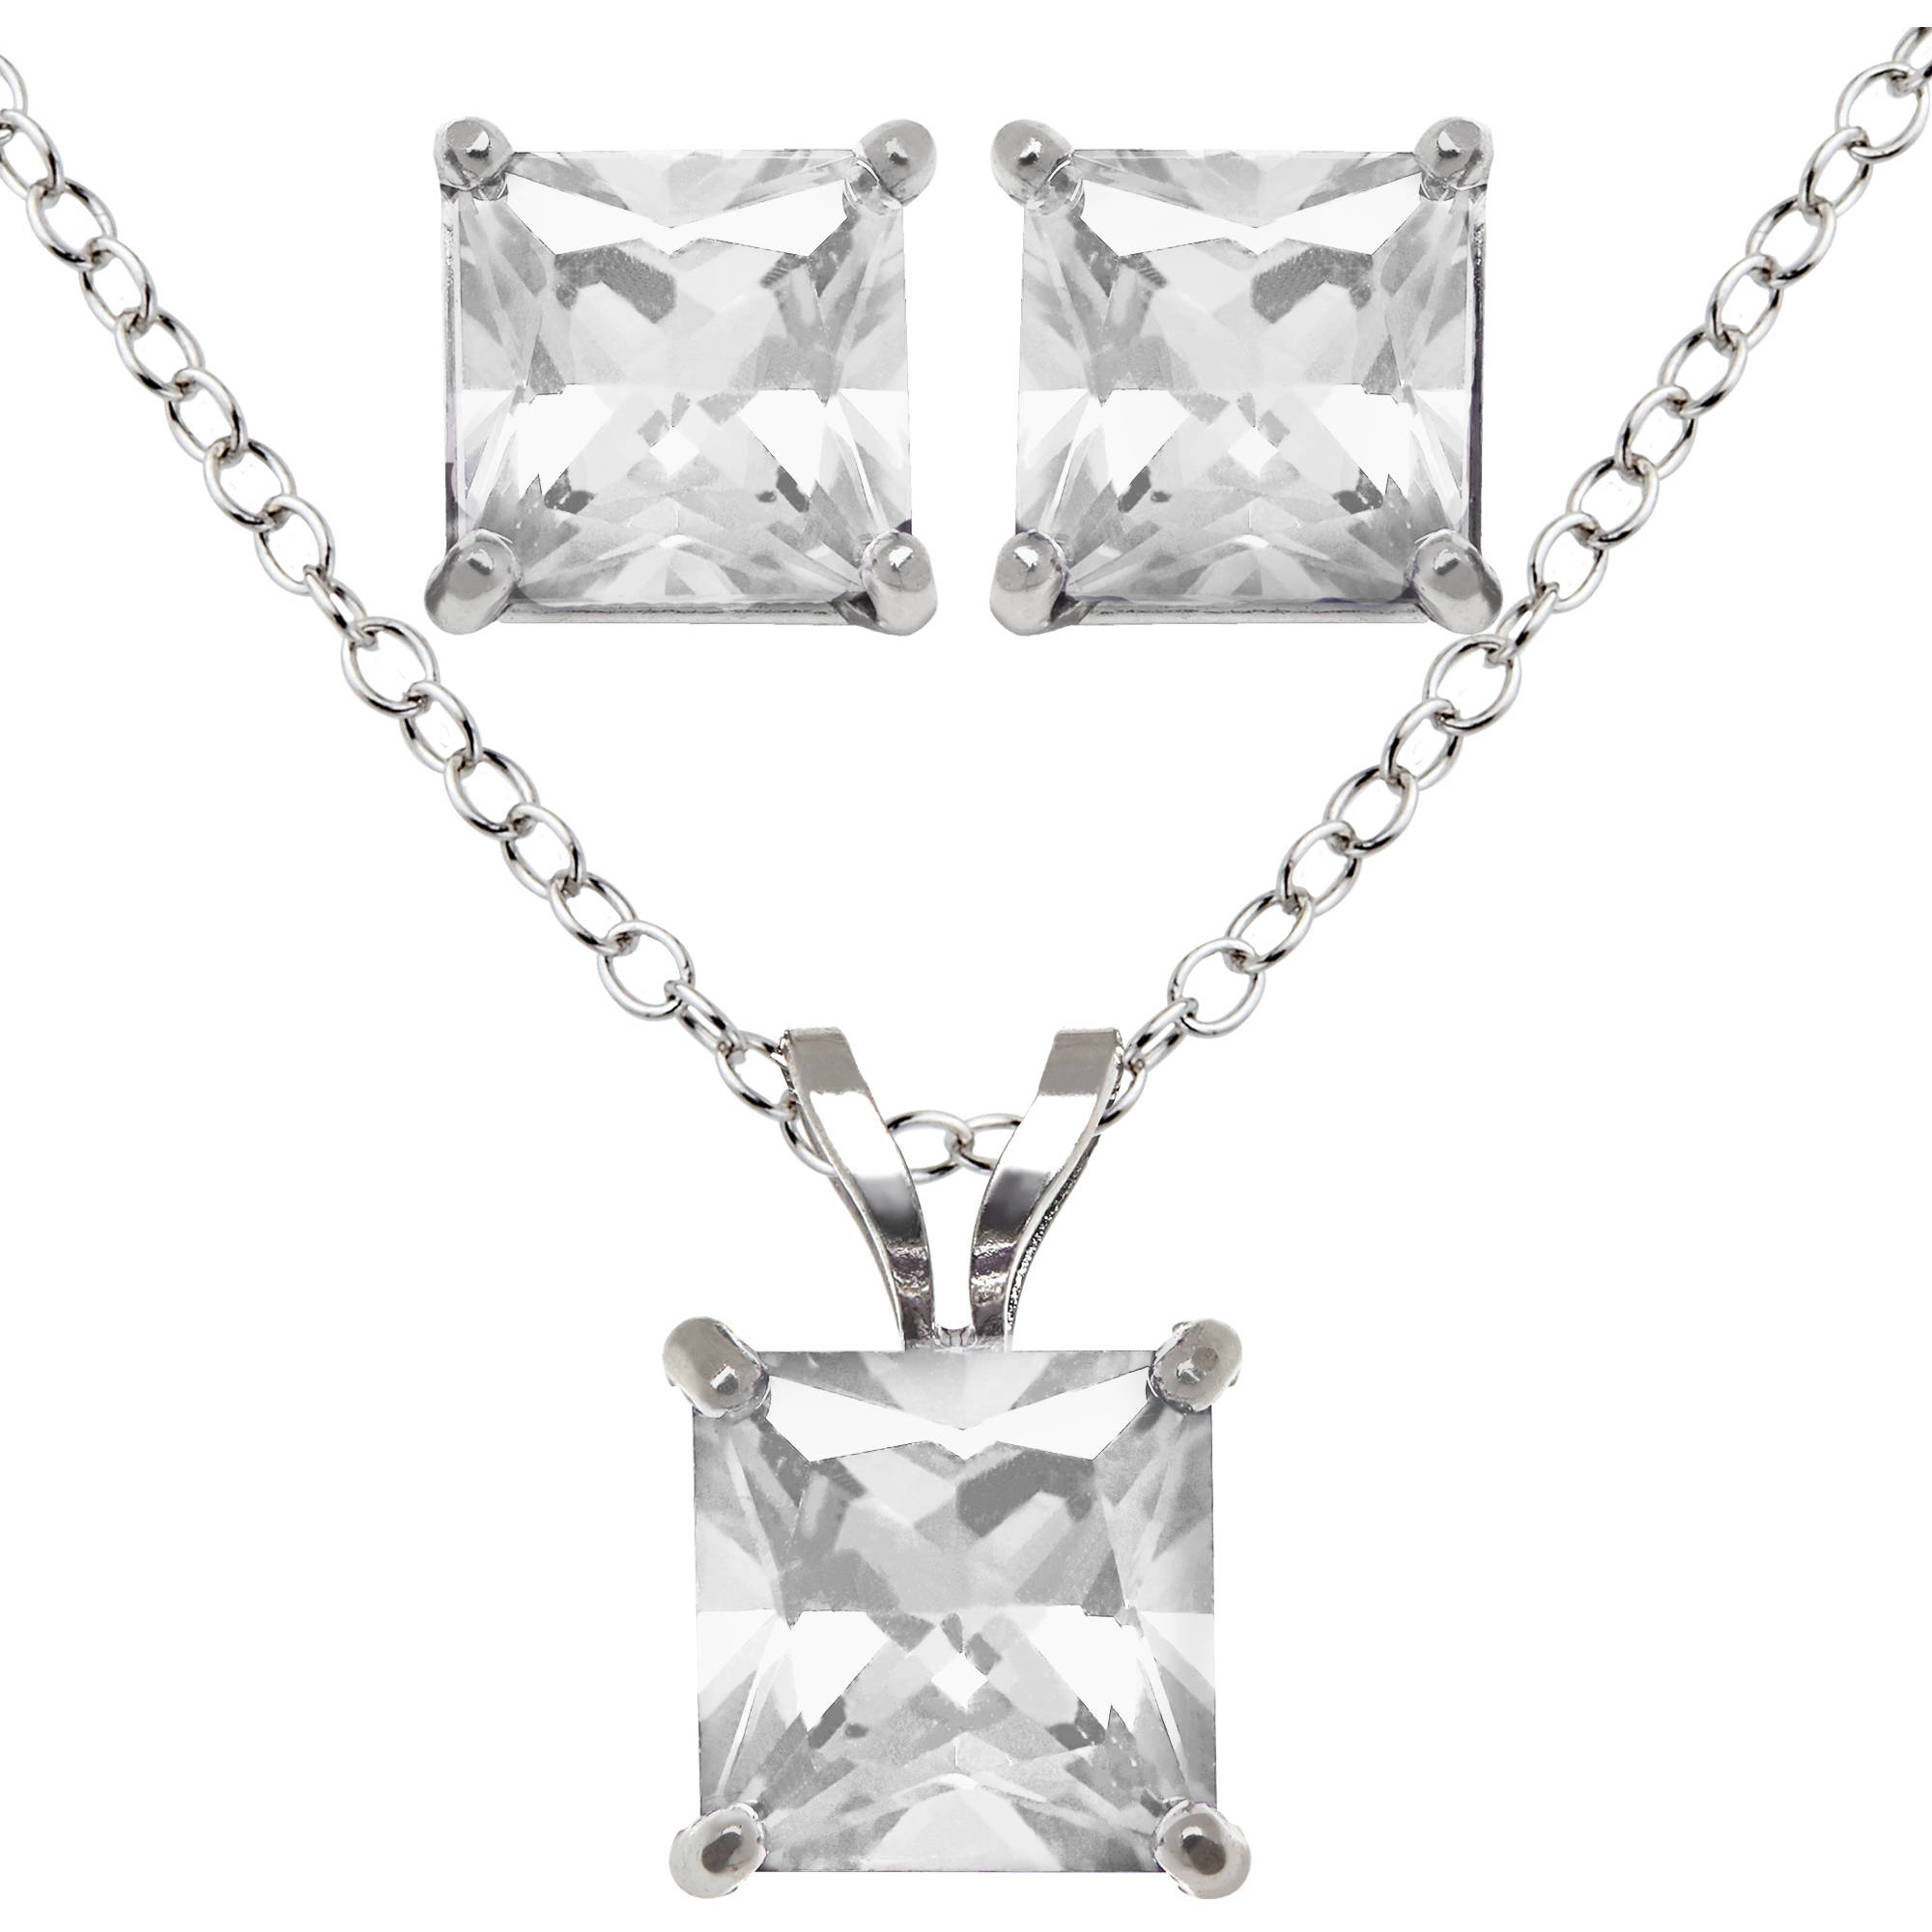 Princess-Cut Cubic Zirconia Sterling Silver Pendant and Earring Set, 18""